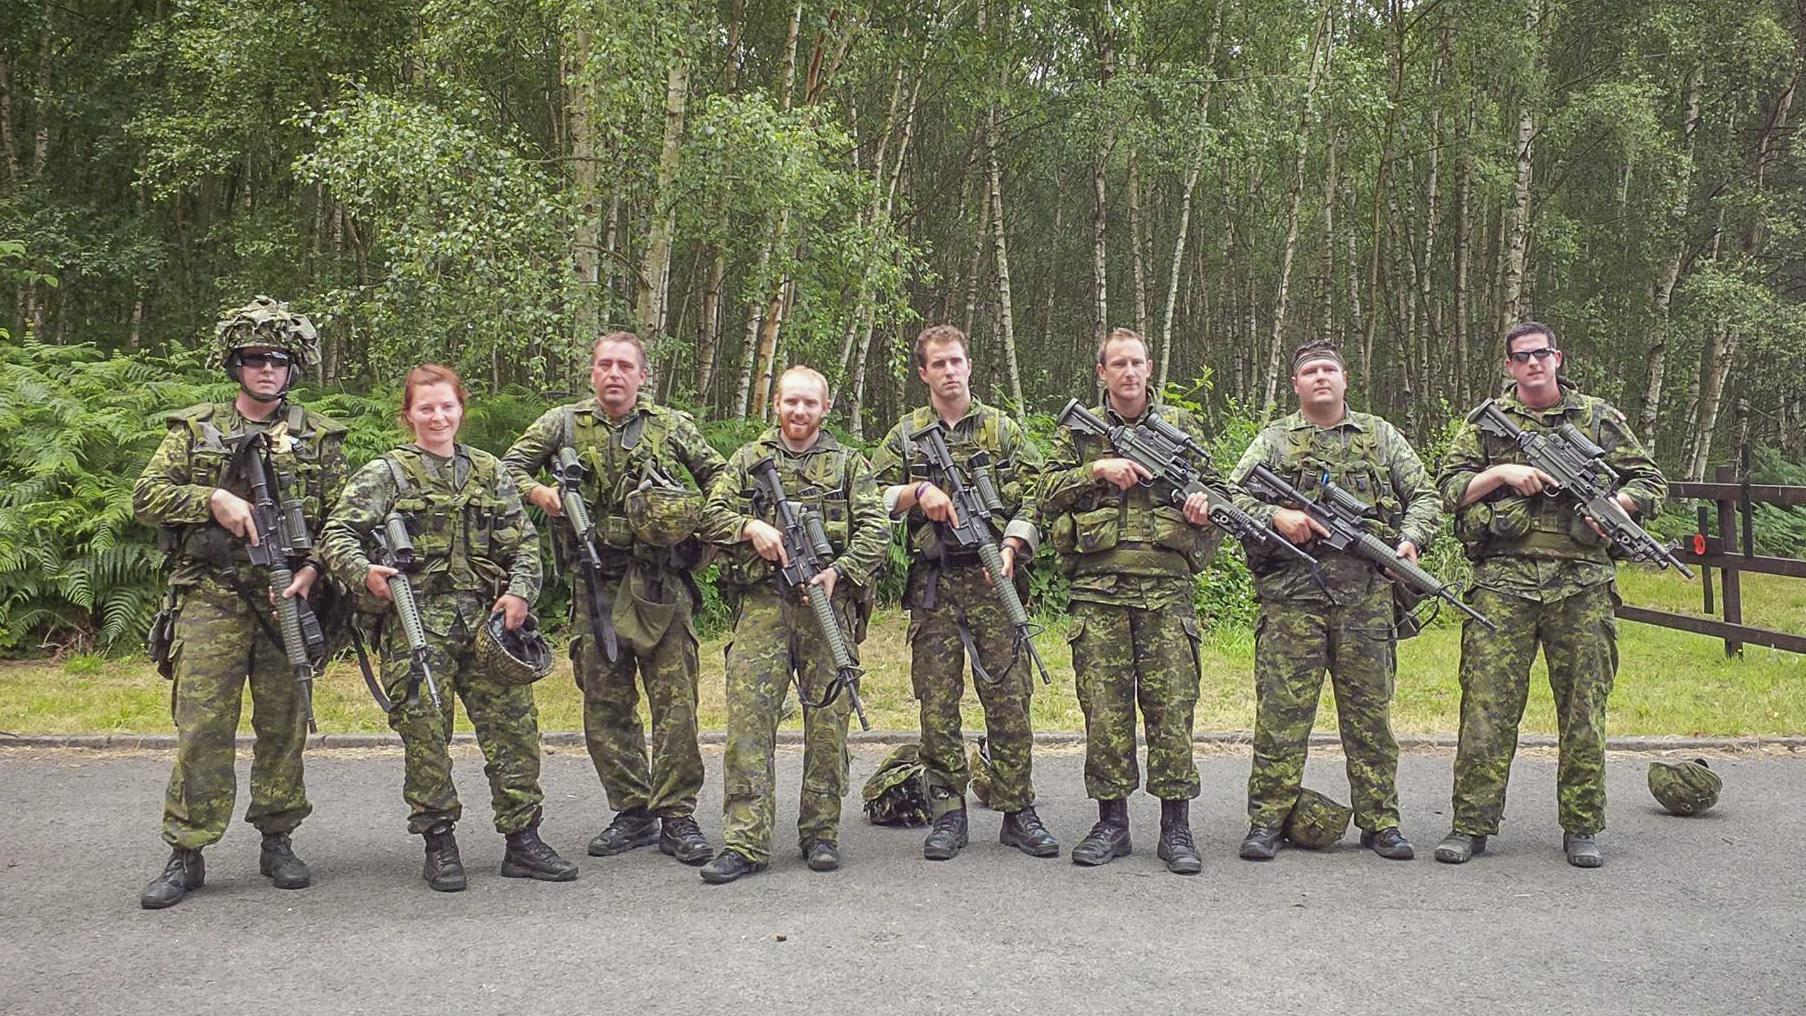 Canadian forces facebook